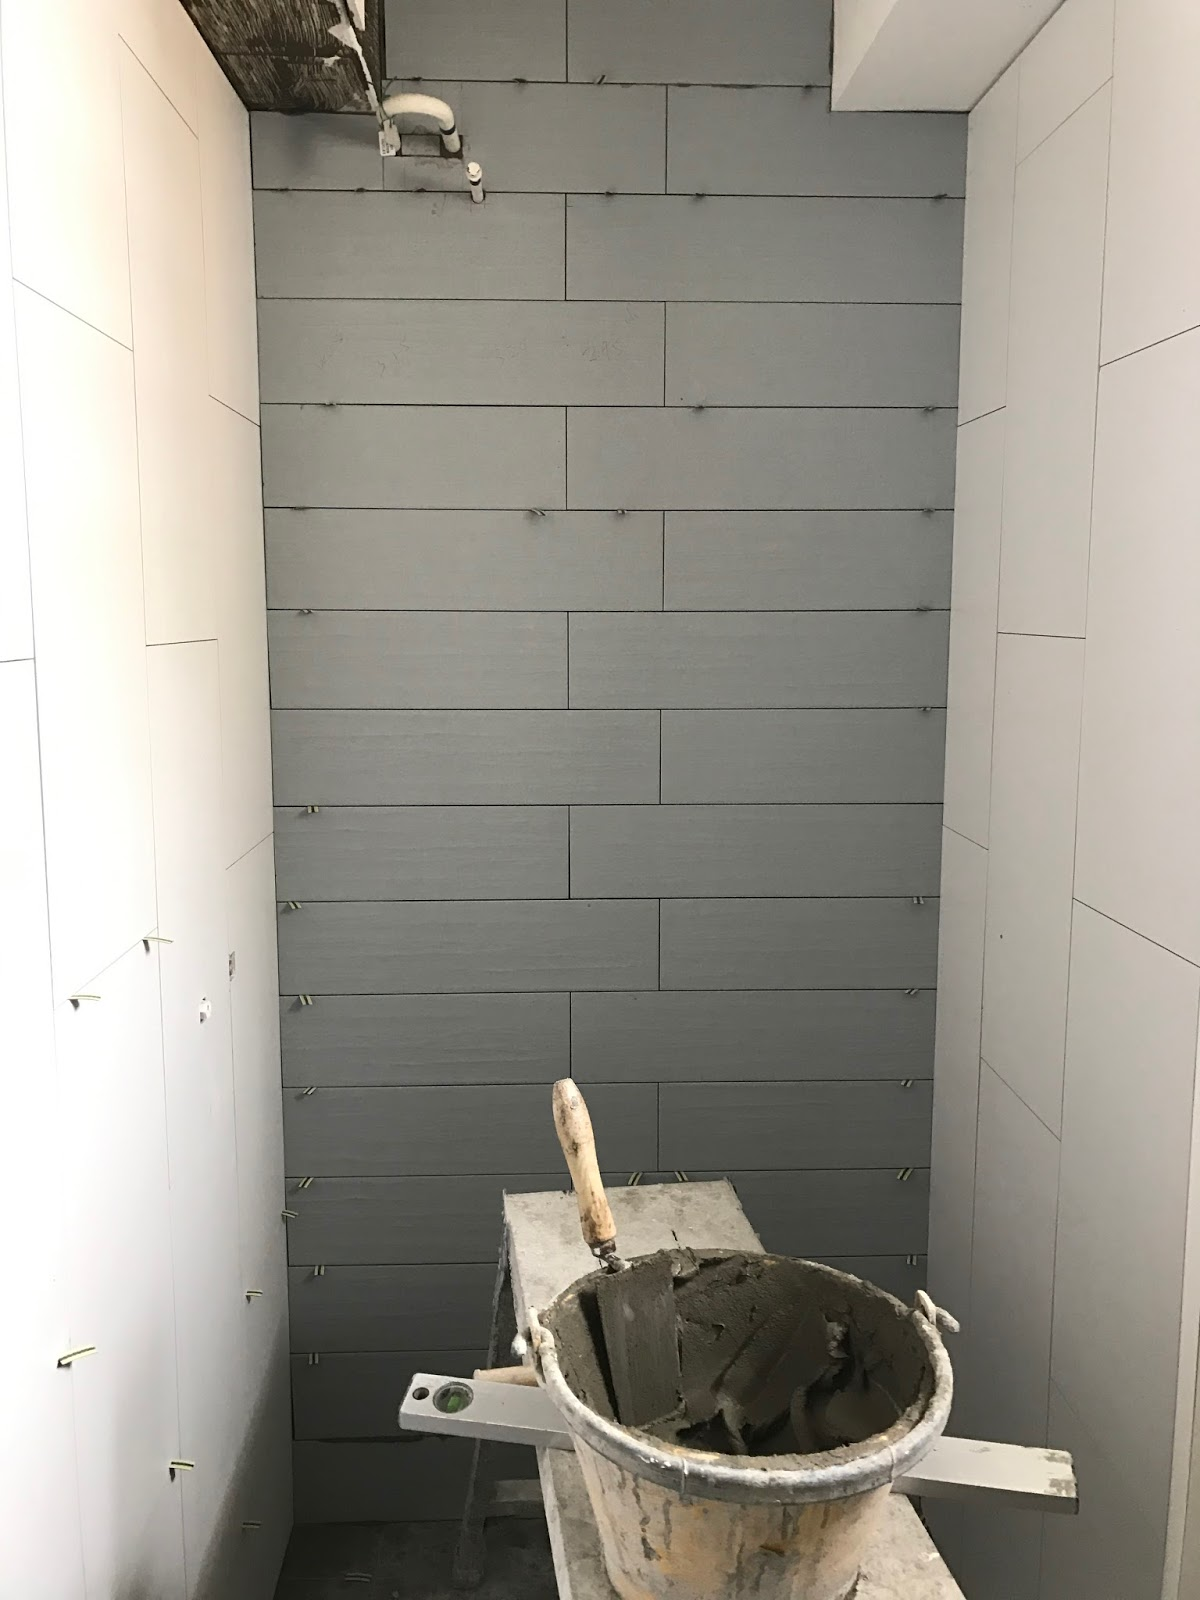 Part 4 renovation common toilet l mbr toilet r with overlay floor wall tiles dailygadgetfo Images